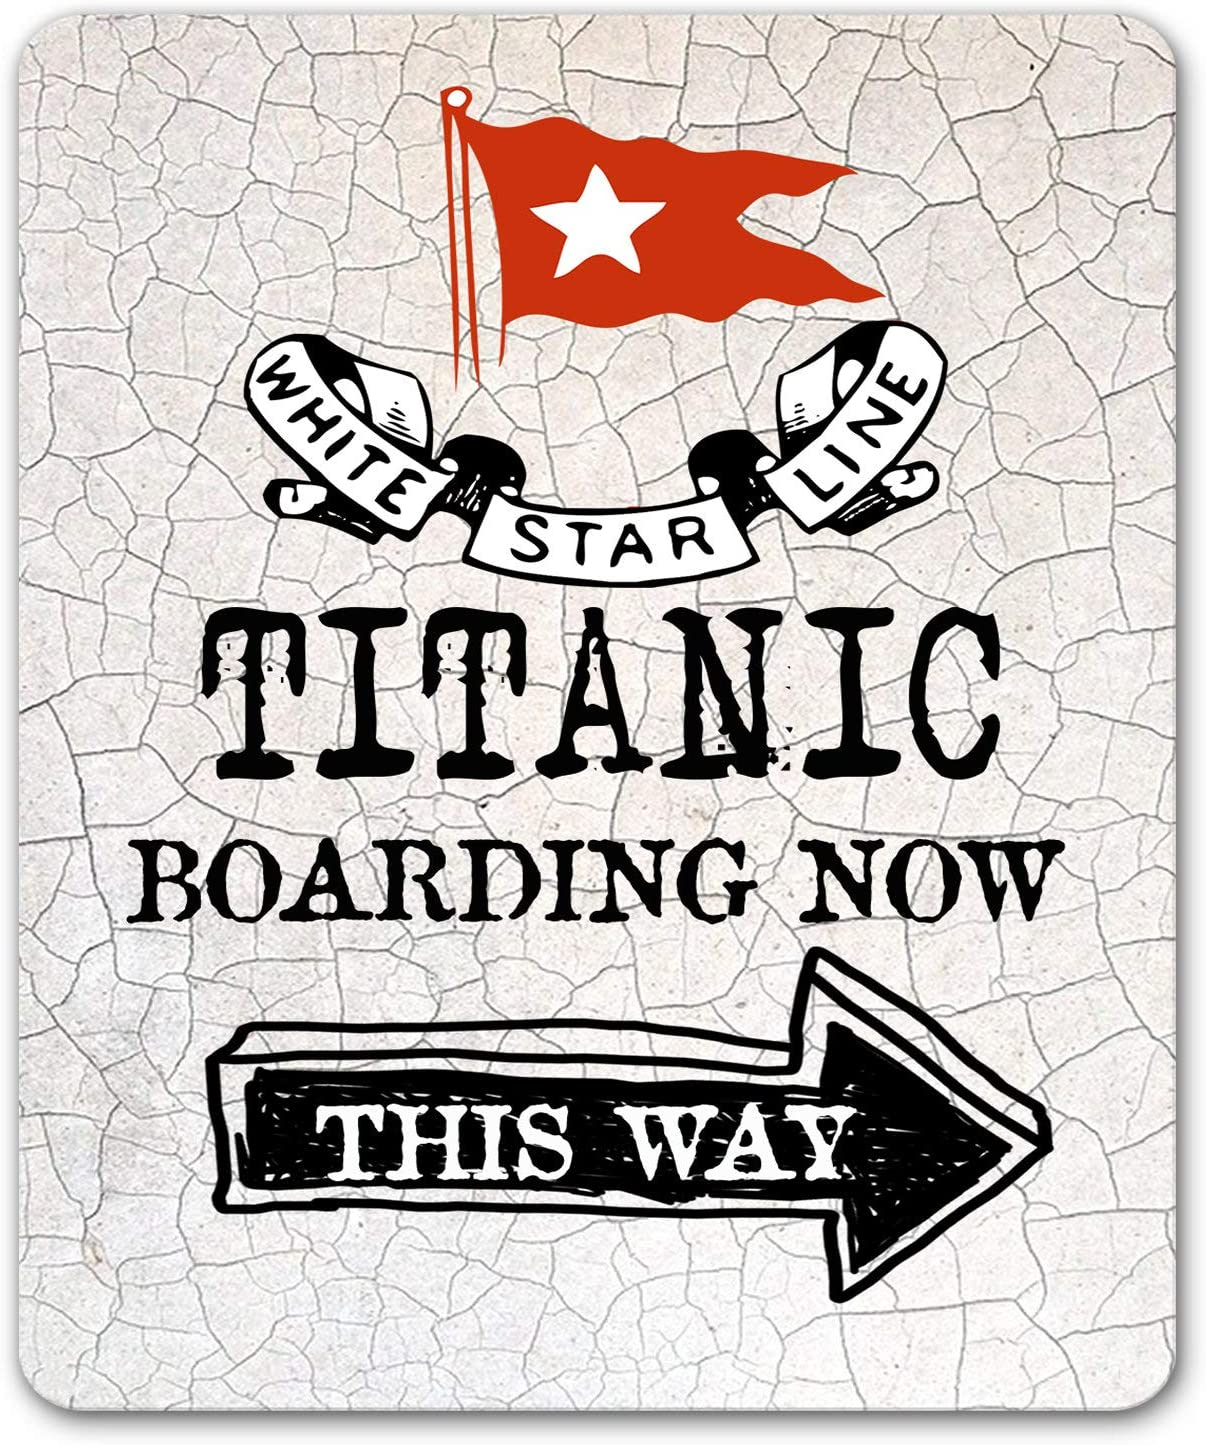 Ol322ay Plaque en m/étal de Style Titanic avec Inscription /« Boarding Now Ship /»